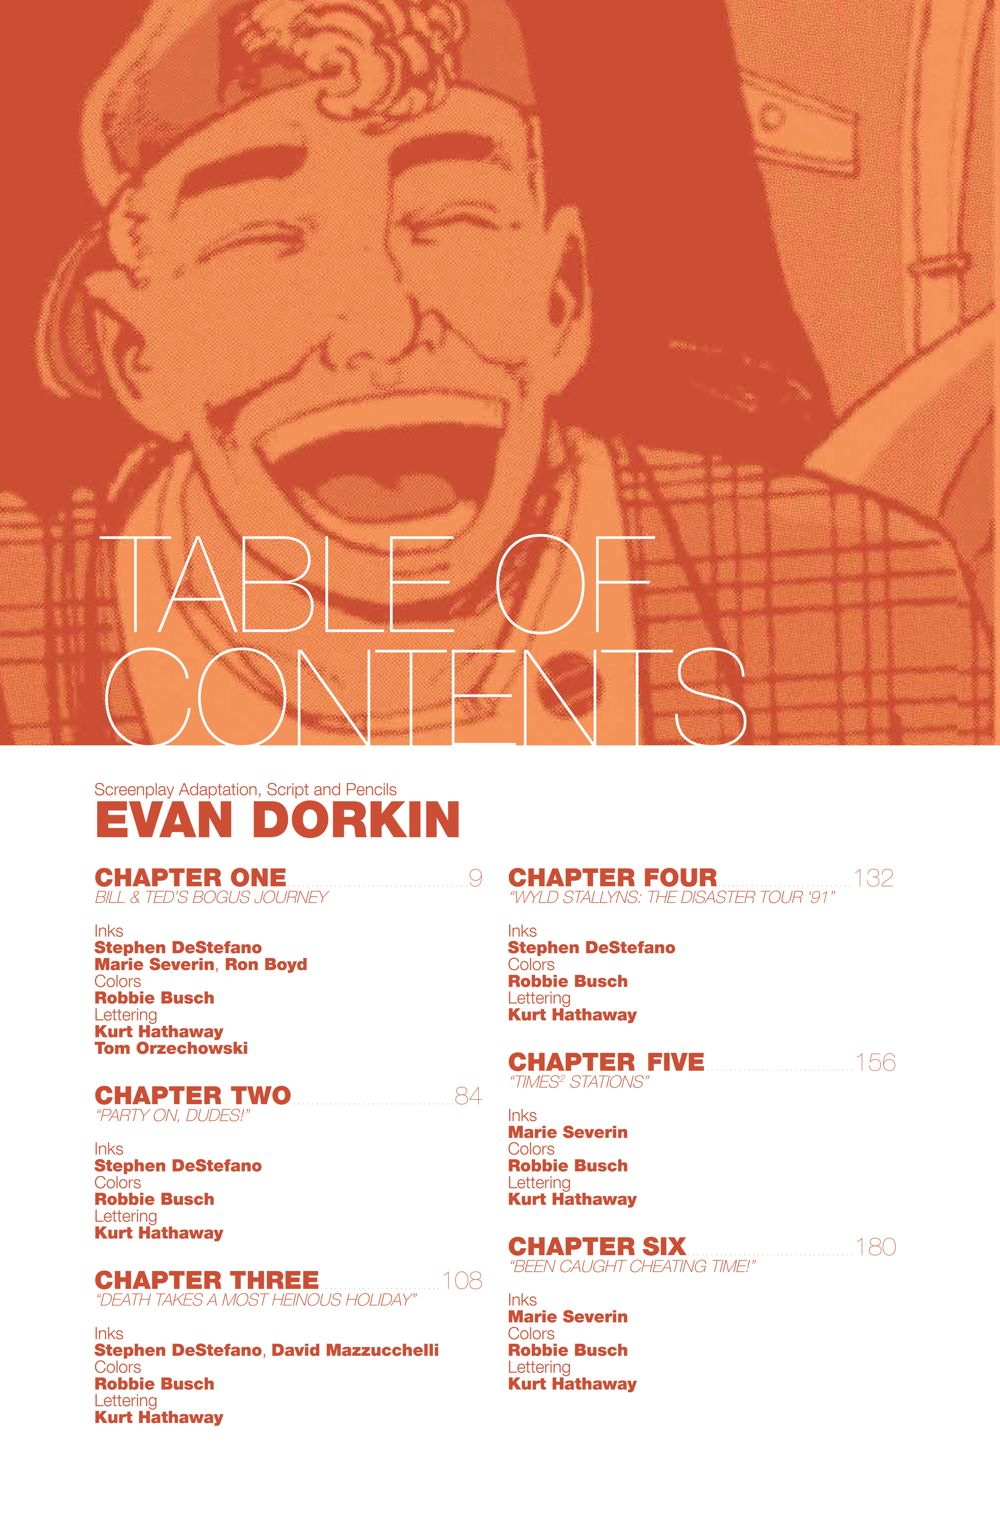 BillTed_Archive_SC_PRESS_6-1 ComicList Previews: BILL AND TED'S EXCELLENT COMIC BOOK ARCHIVE TP